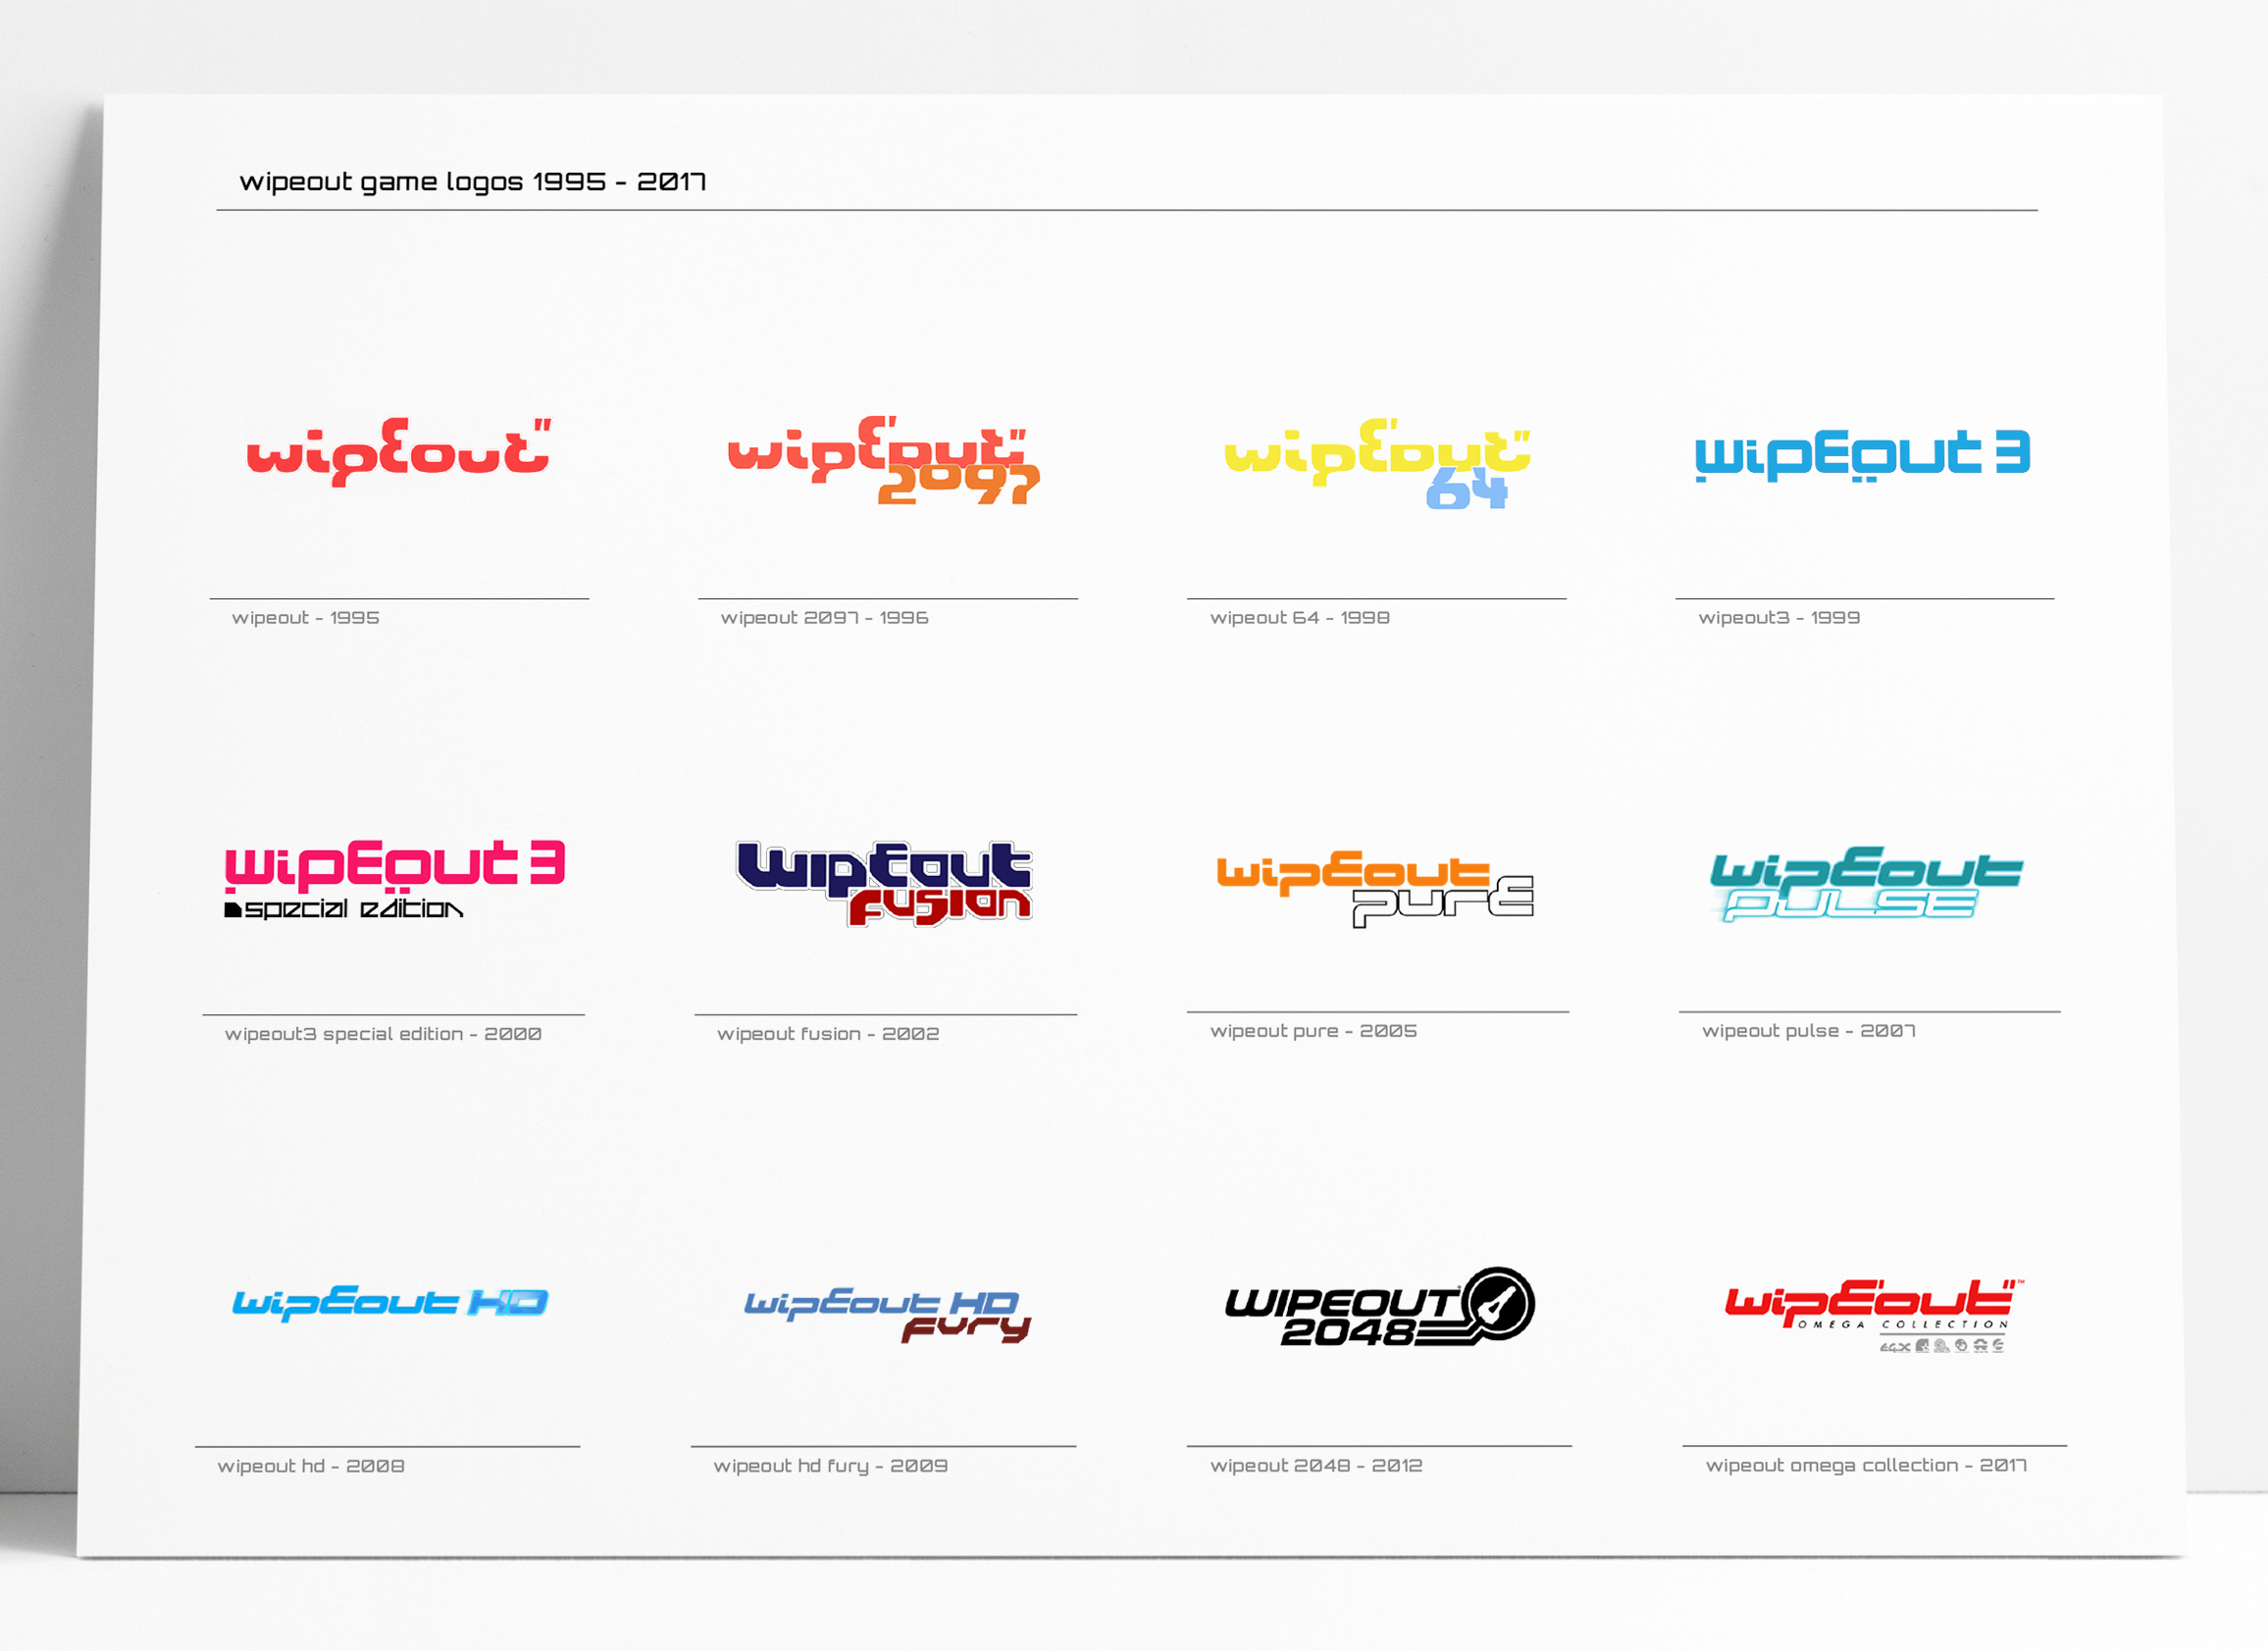 wipeout game logos 1995 - 2017 by the designers republic